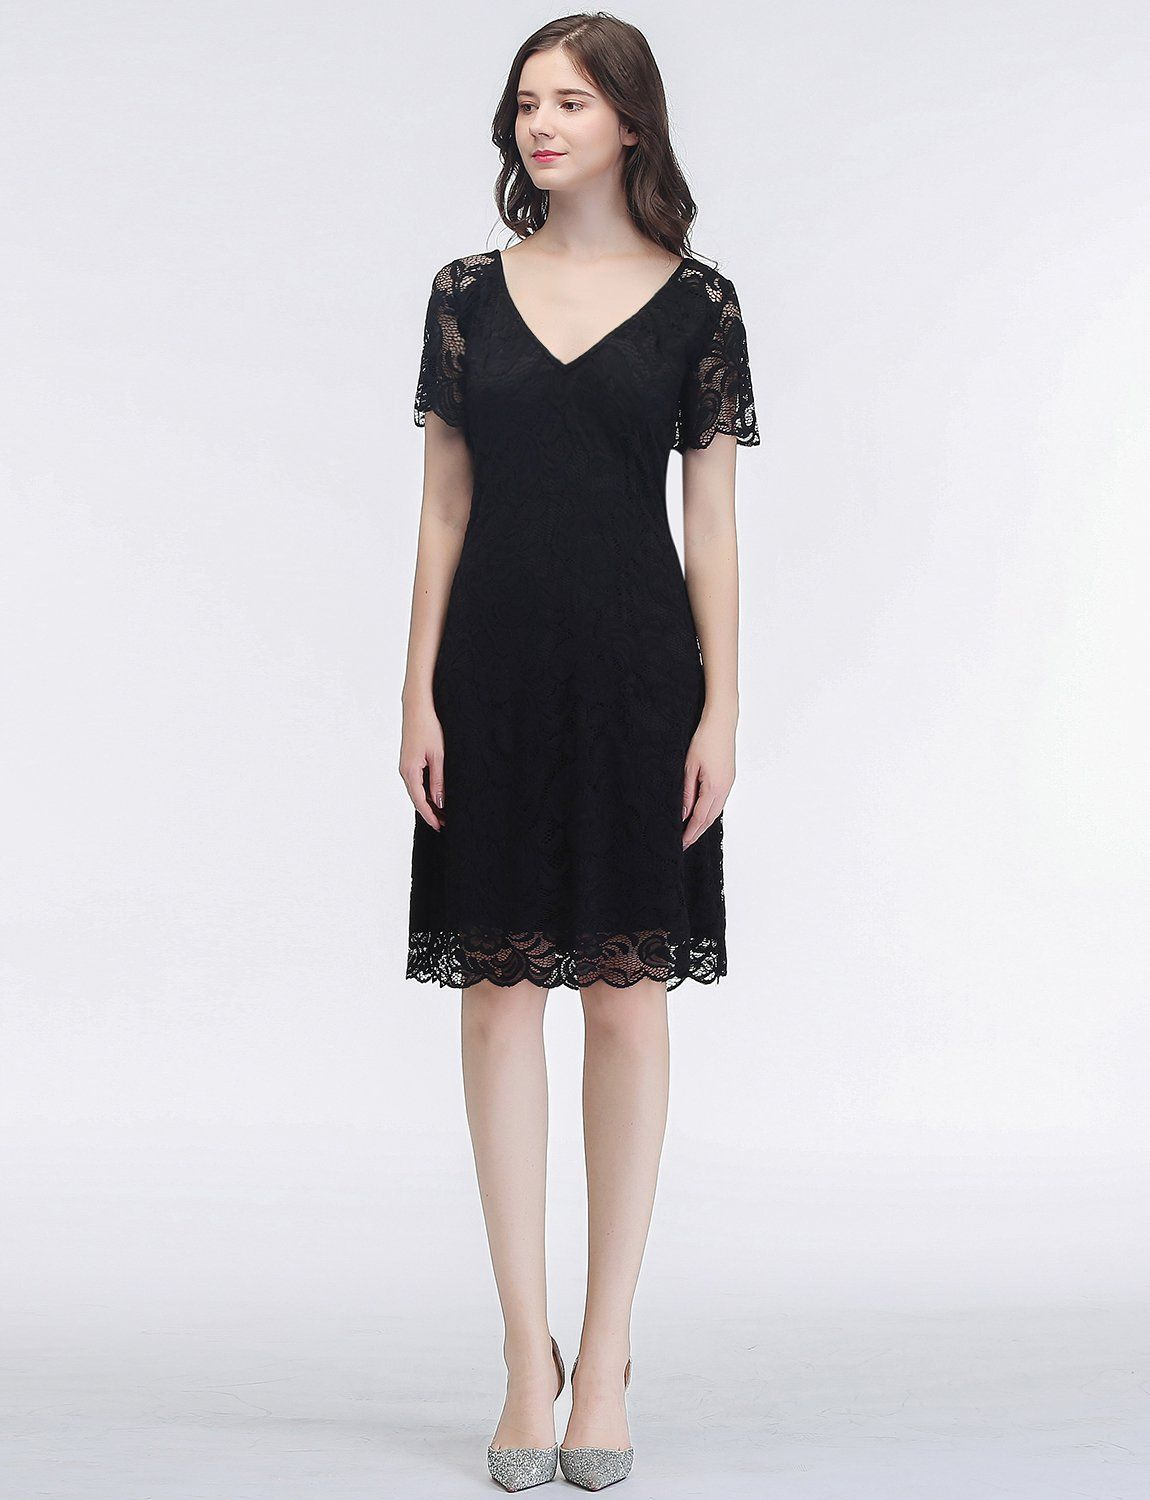 Gardenwed womens vintage floral lace dress cocktail party bridesmaid